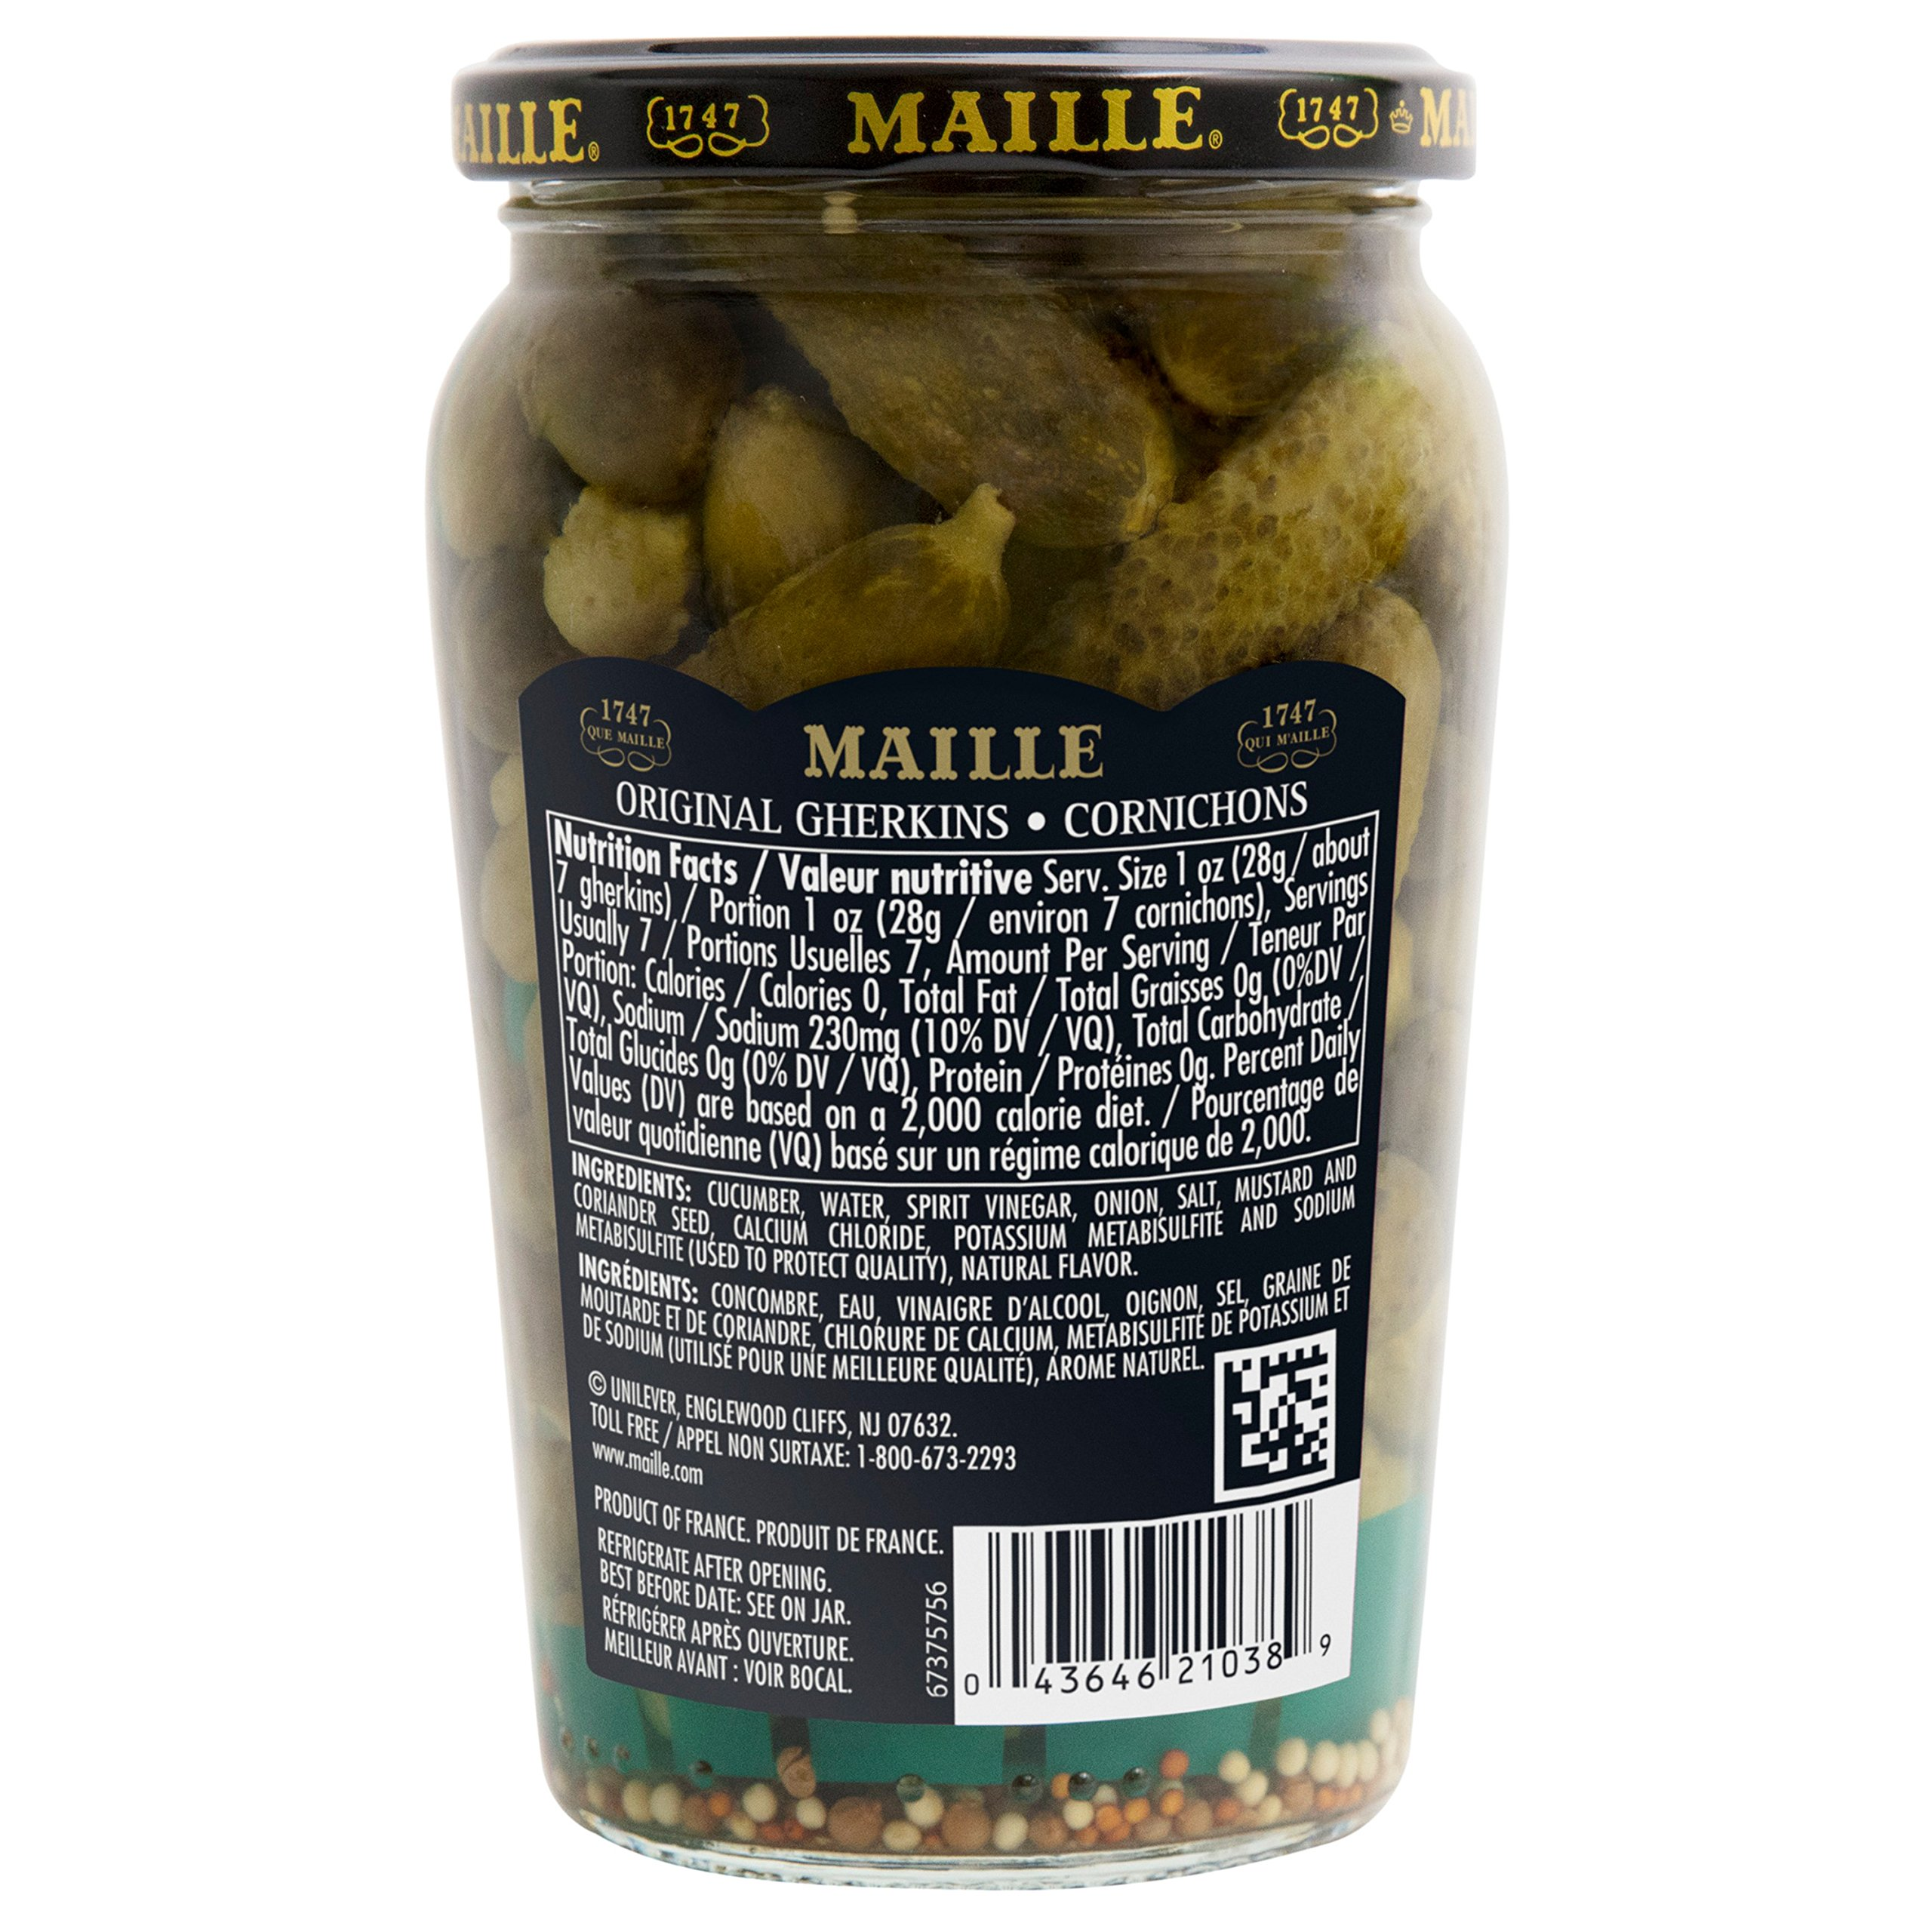 Maille Pickles, Cornichons Original, 13.5 oz, Pack of 12 by Maille (Image #2)